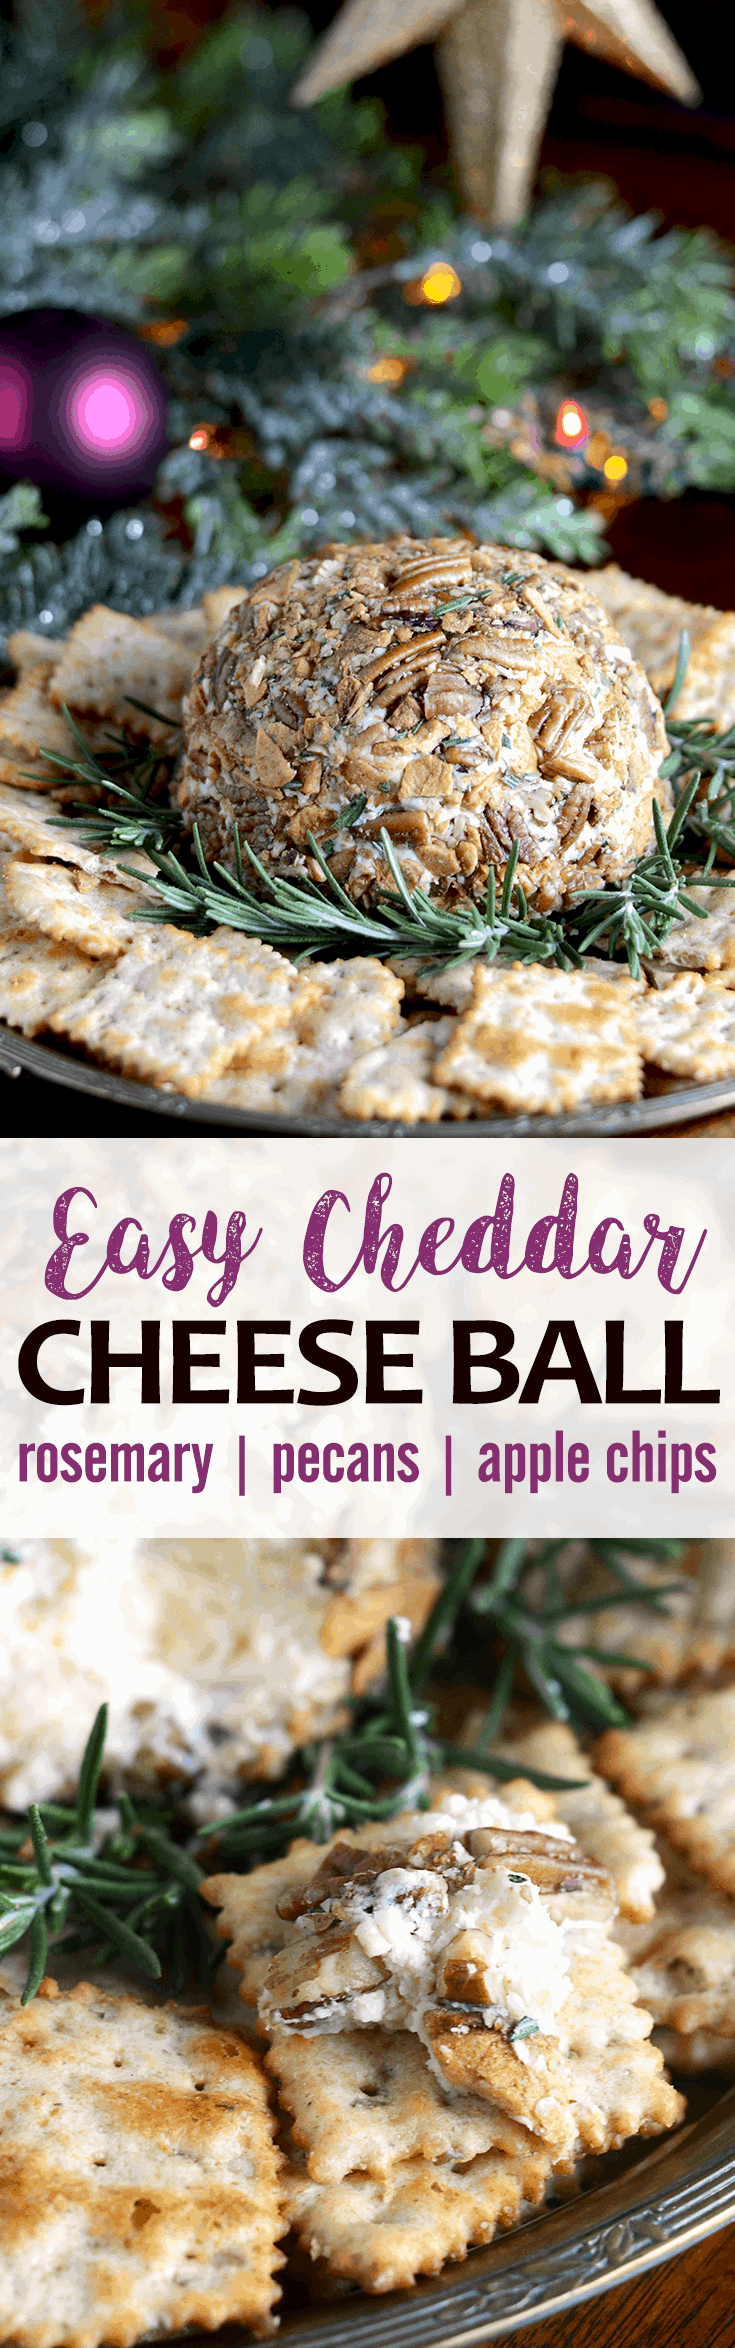 Easy Cheddar Cheese Ball Pin - Easy Cheddar Cheese Ball with Butter Roasted Apple Chips, Pecans and Rosemary